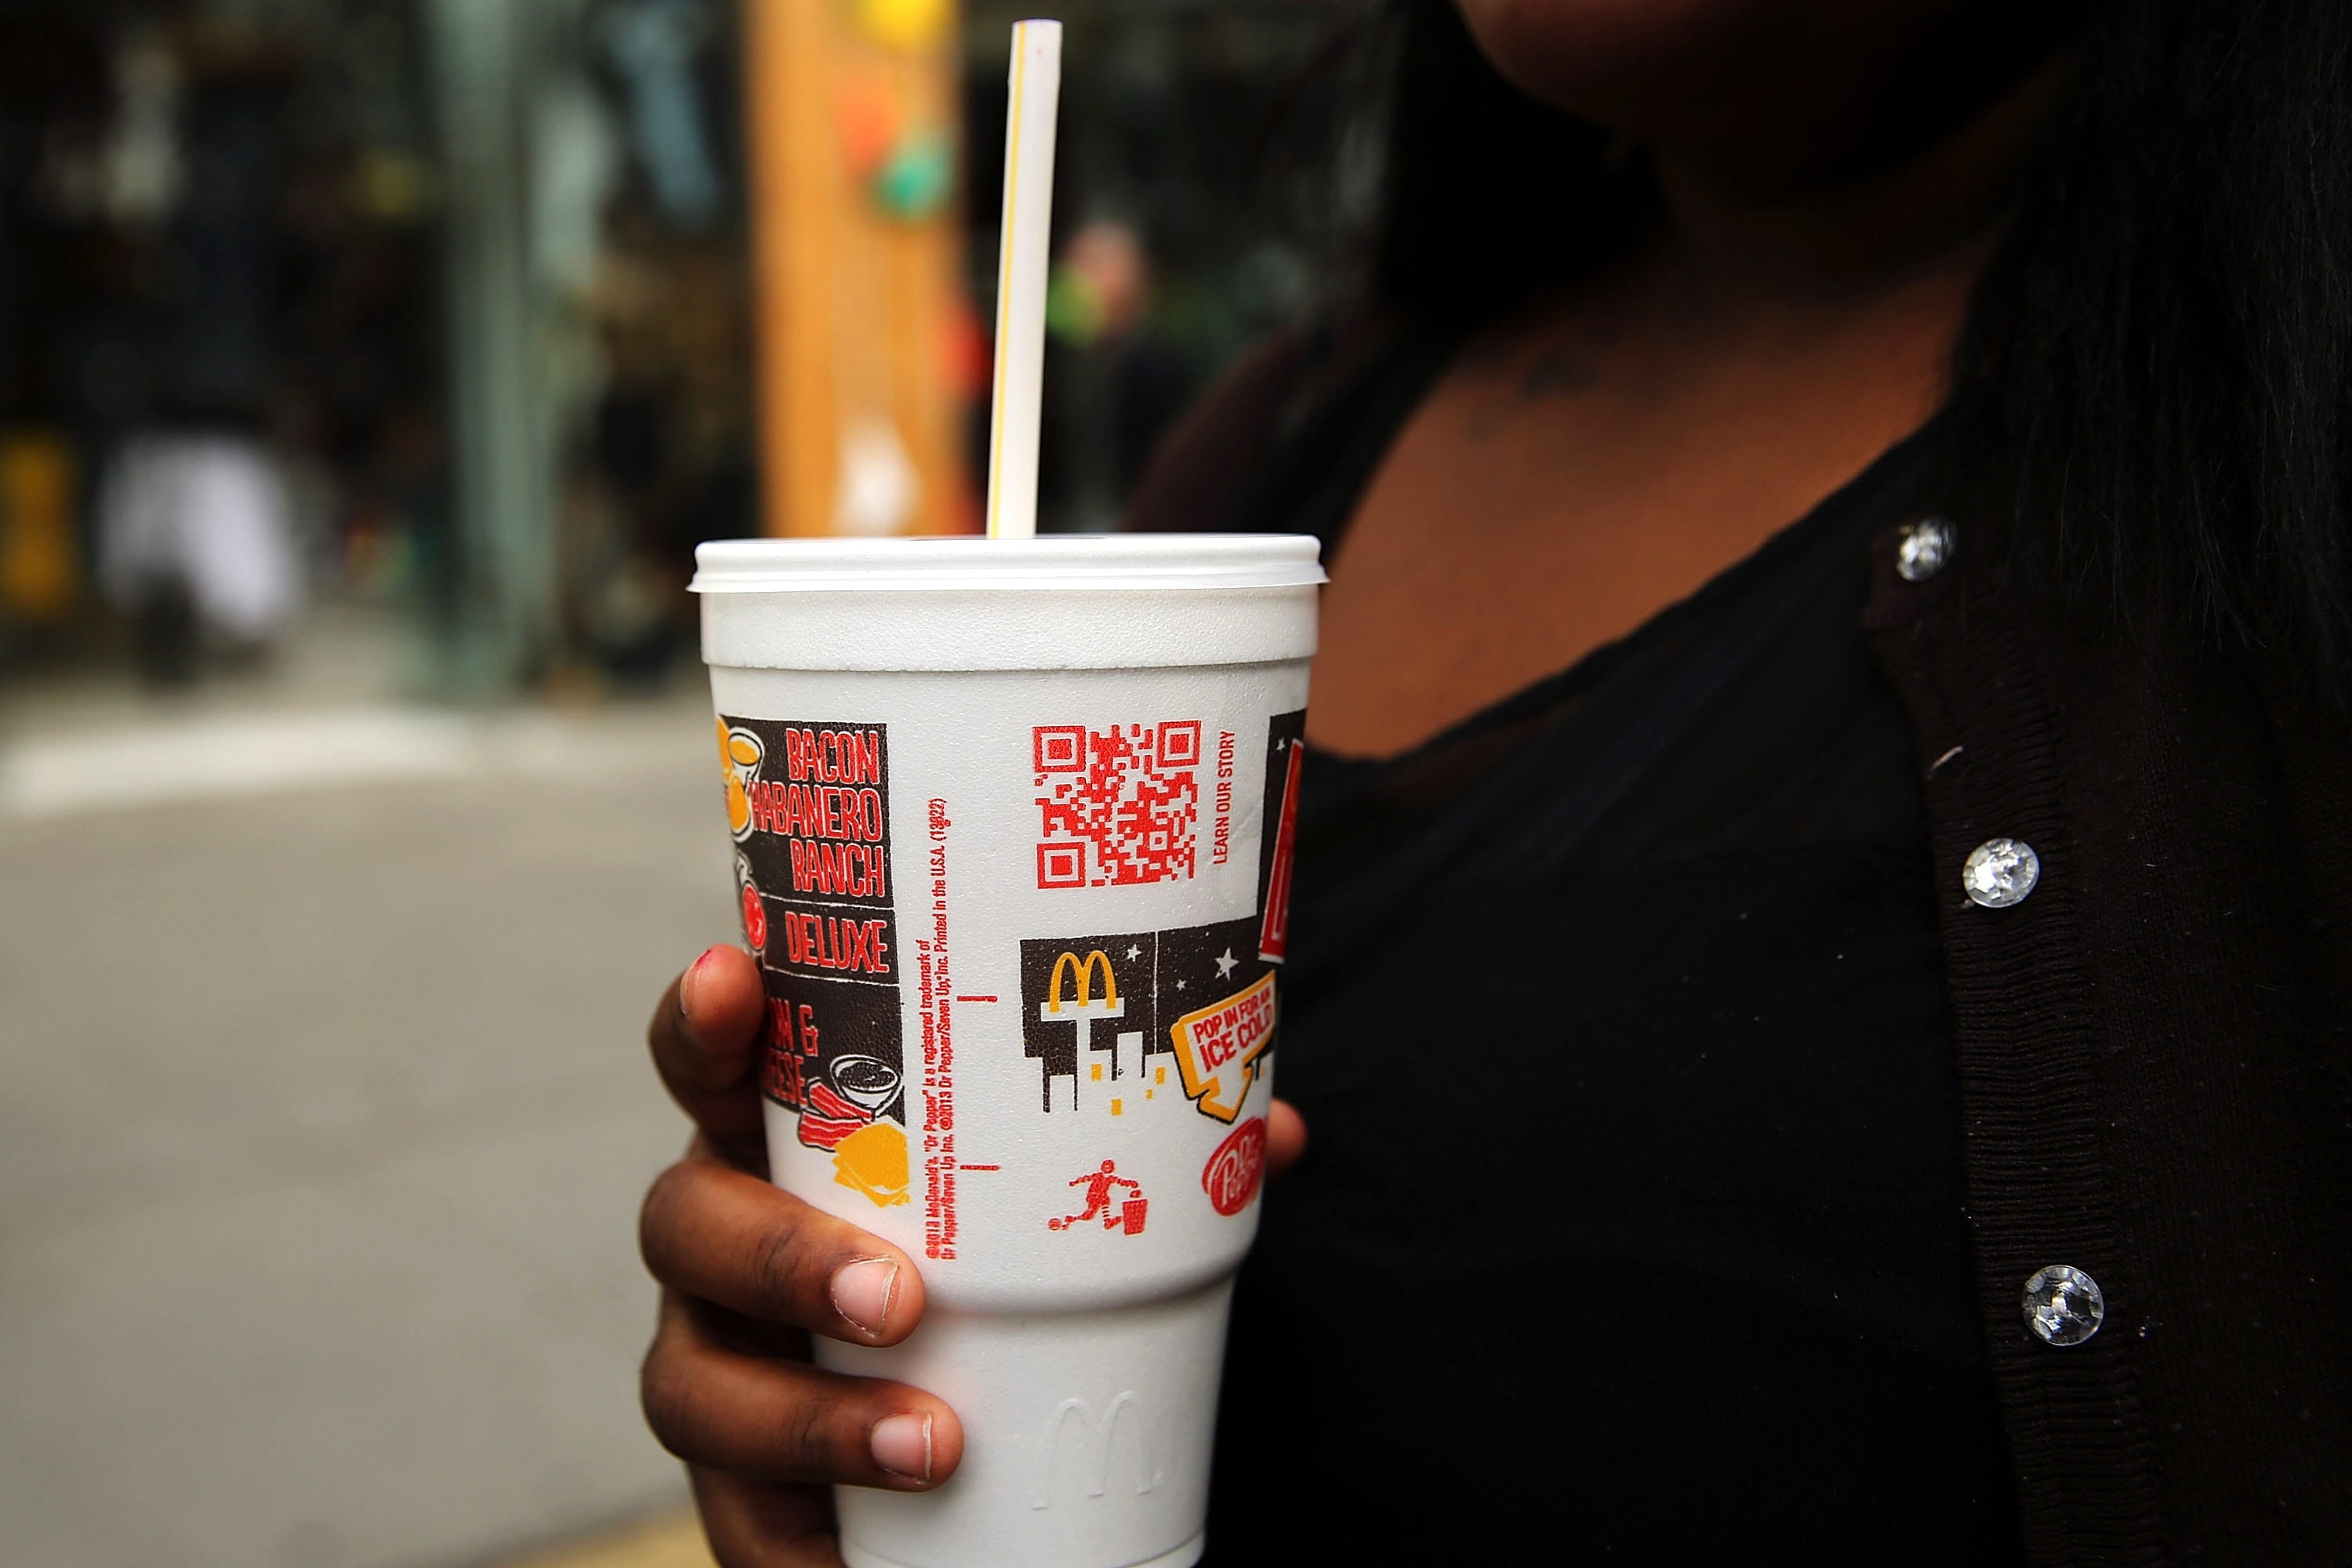 McDonald's paper over plastic straw? Better for earth to not use one